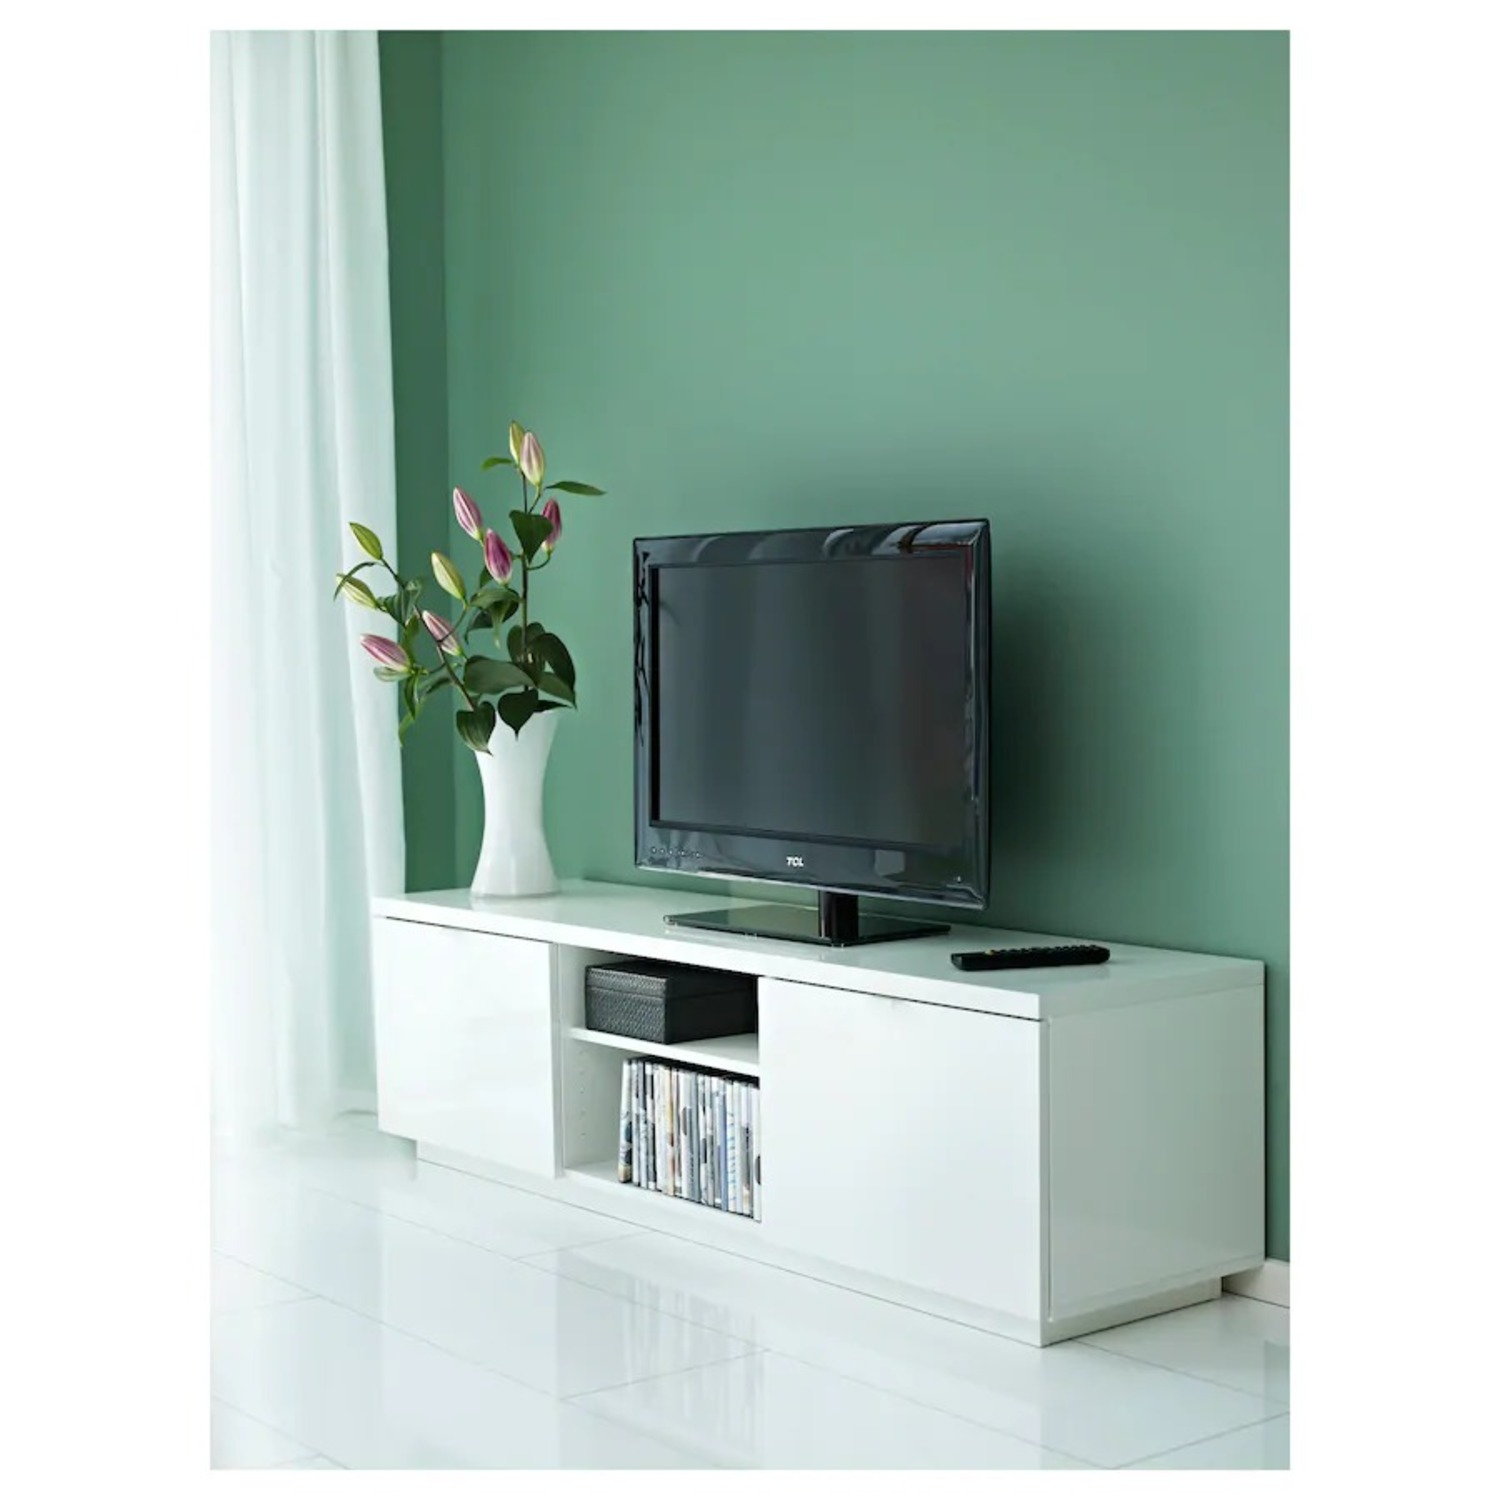 IKEA White TV Stand with Big Storage Space